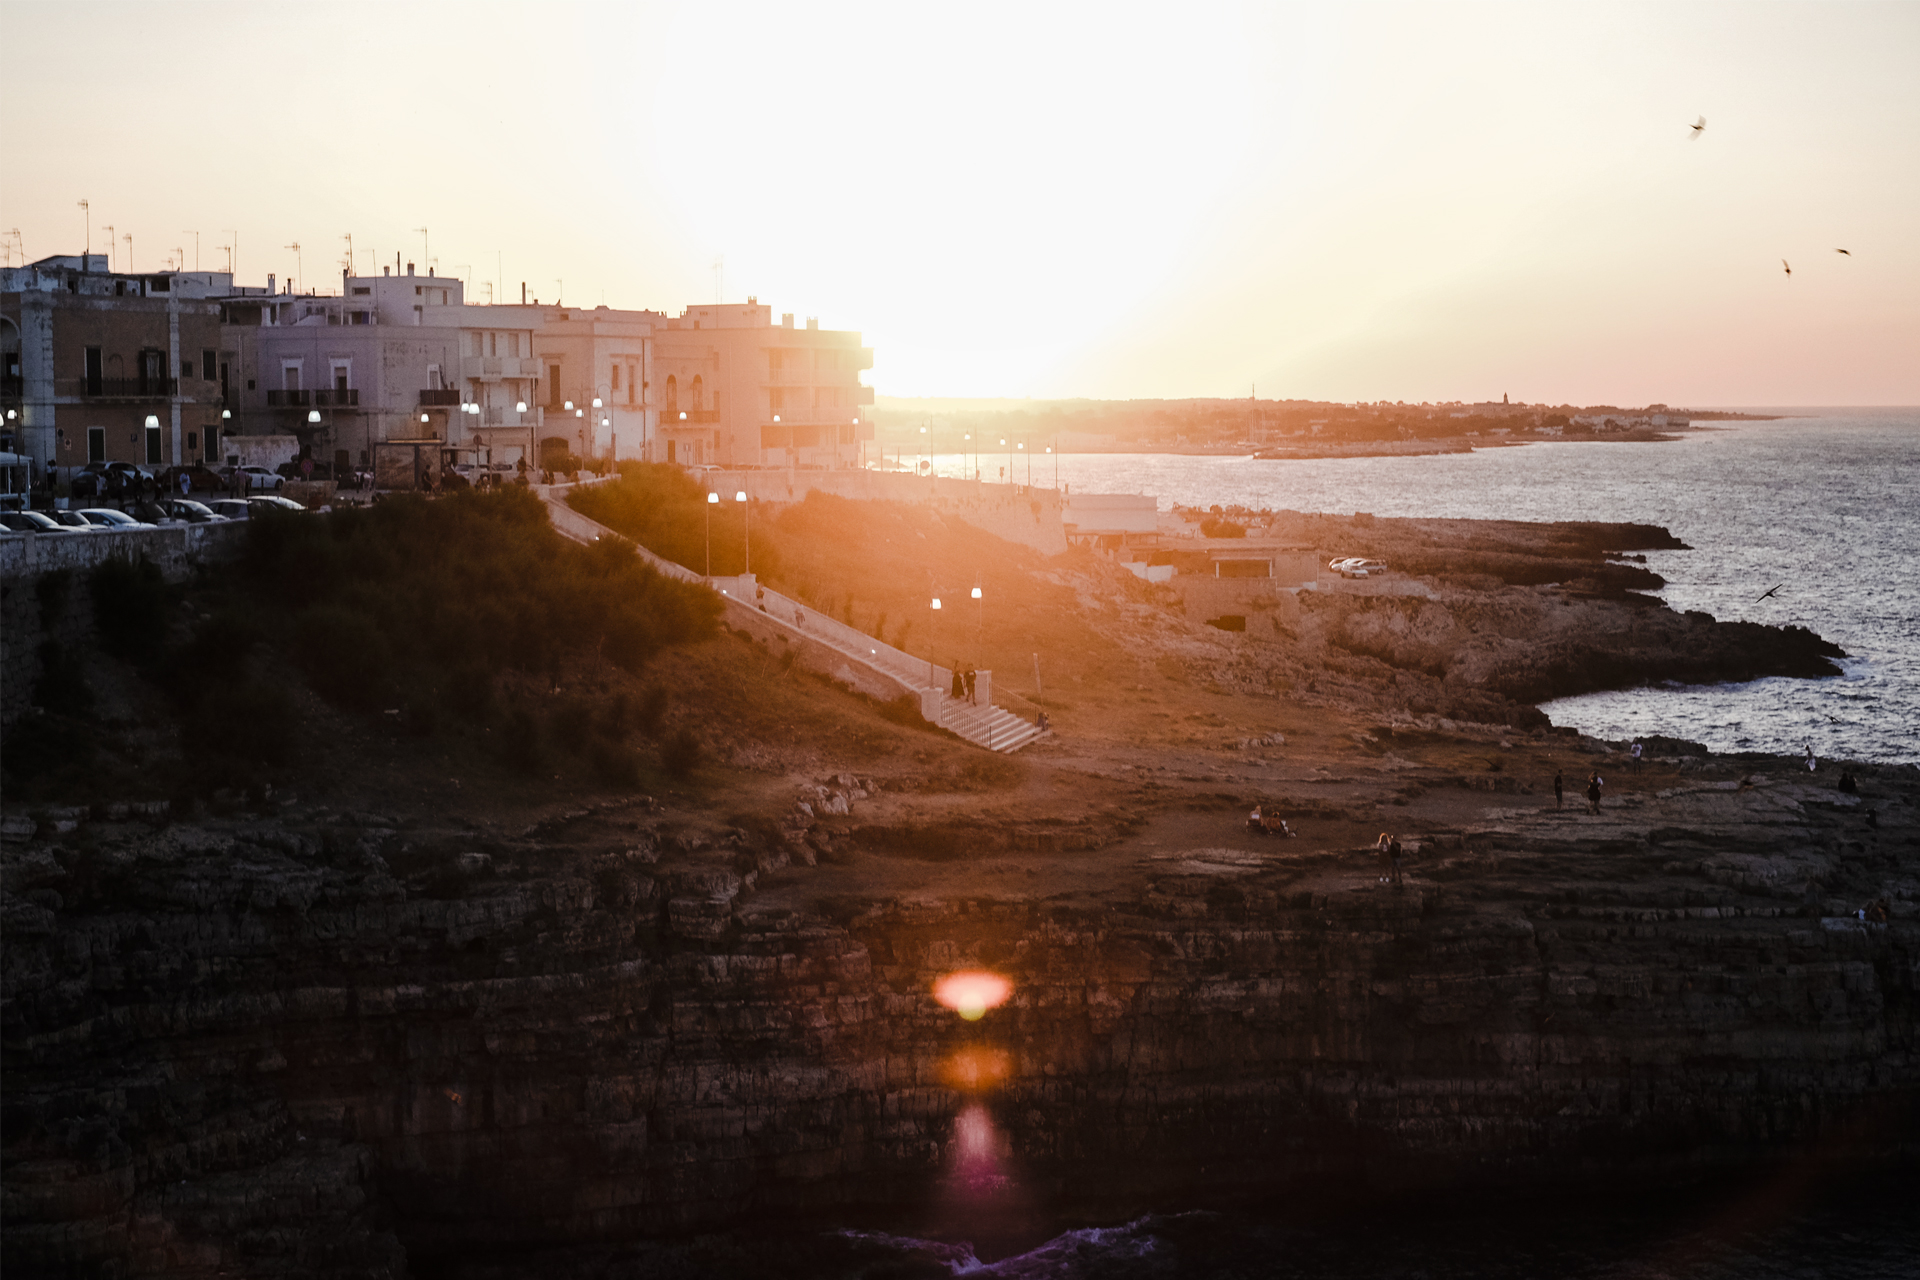 A glimpse of Puglia, sunset from aquamarea hotel